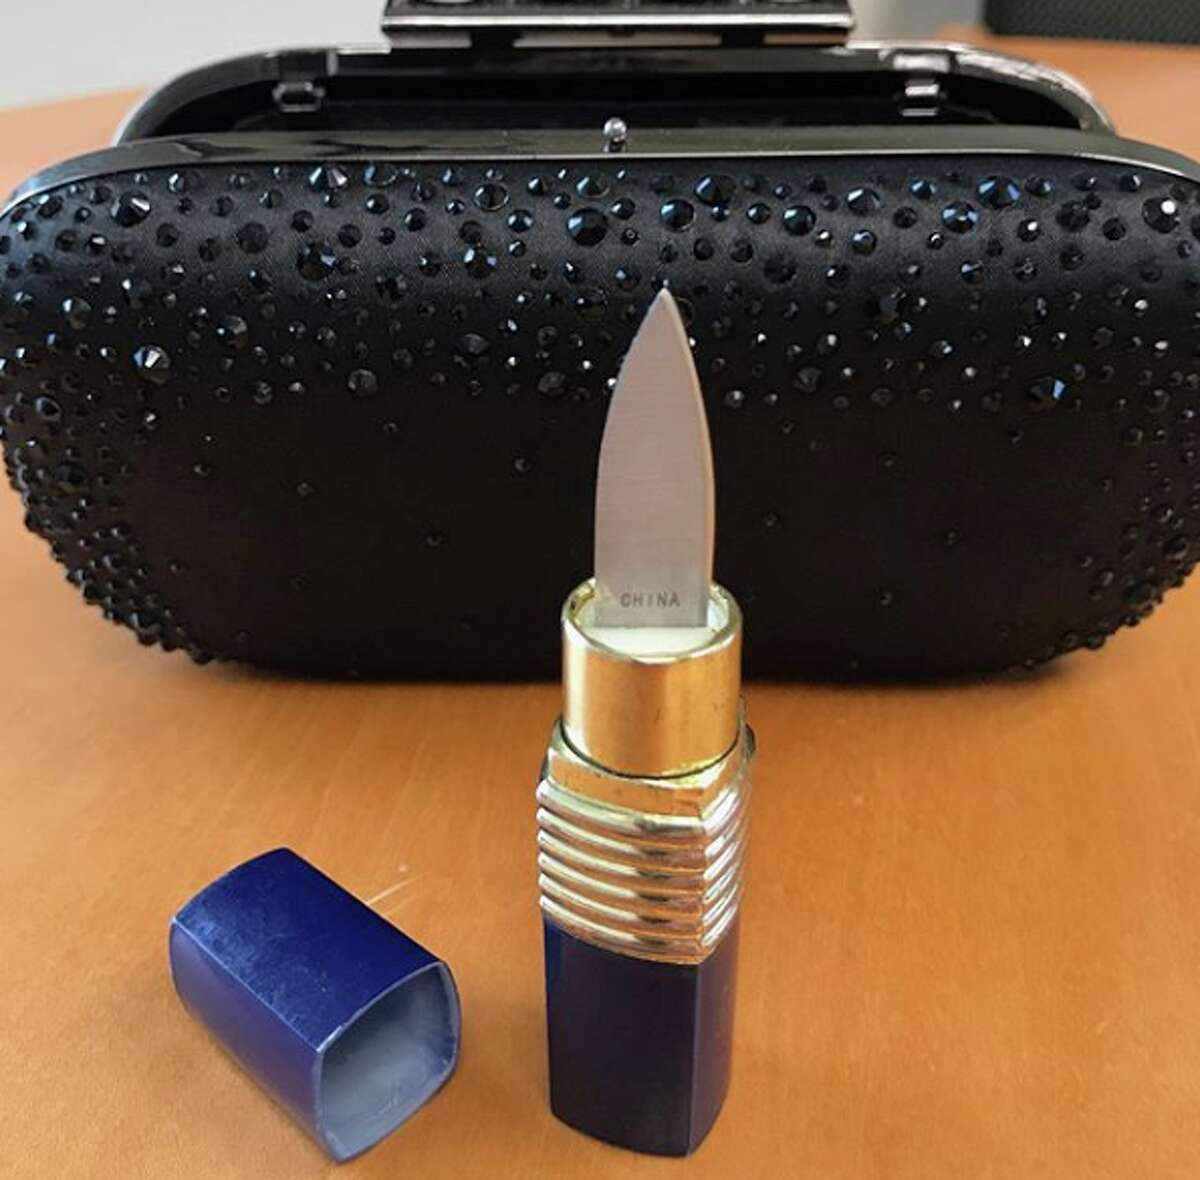 Bond villainesses, be advised: Lipstick that turns into a dagger must be packed in a checked bag, not a carry-on.